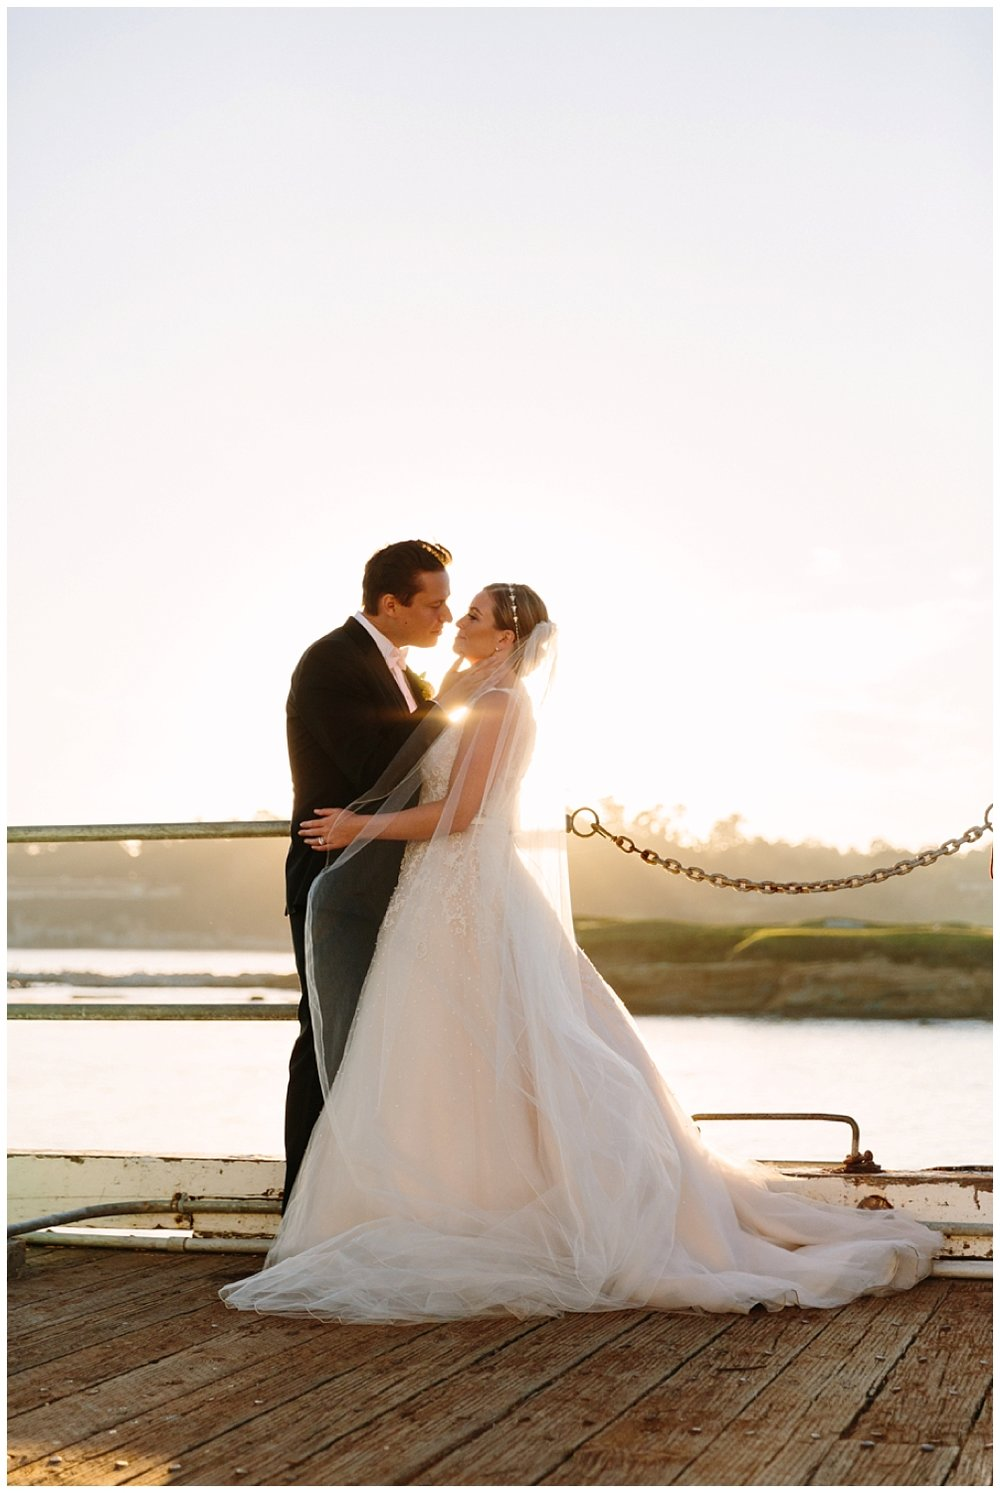 LCphoto-HM-wedding-preview-094_WEB.jpg